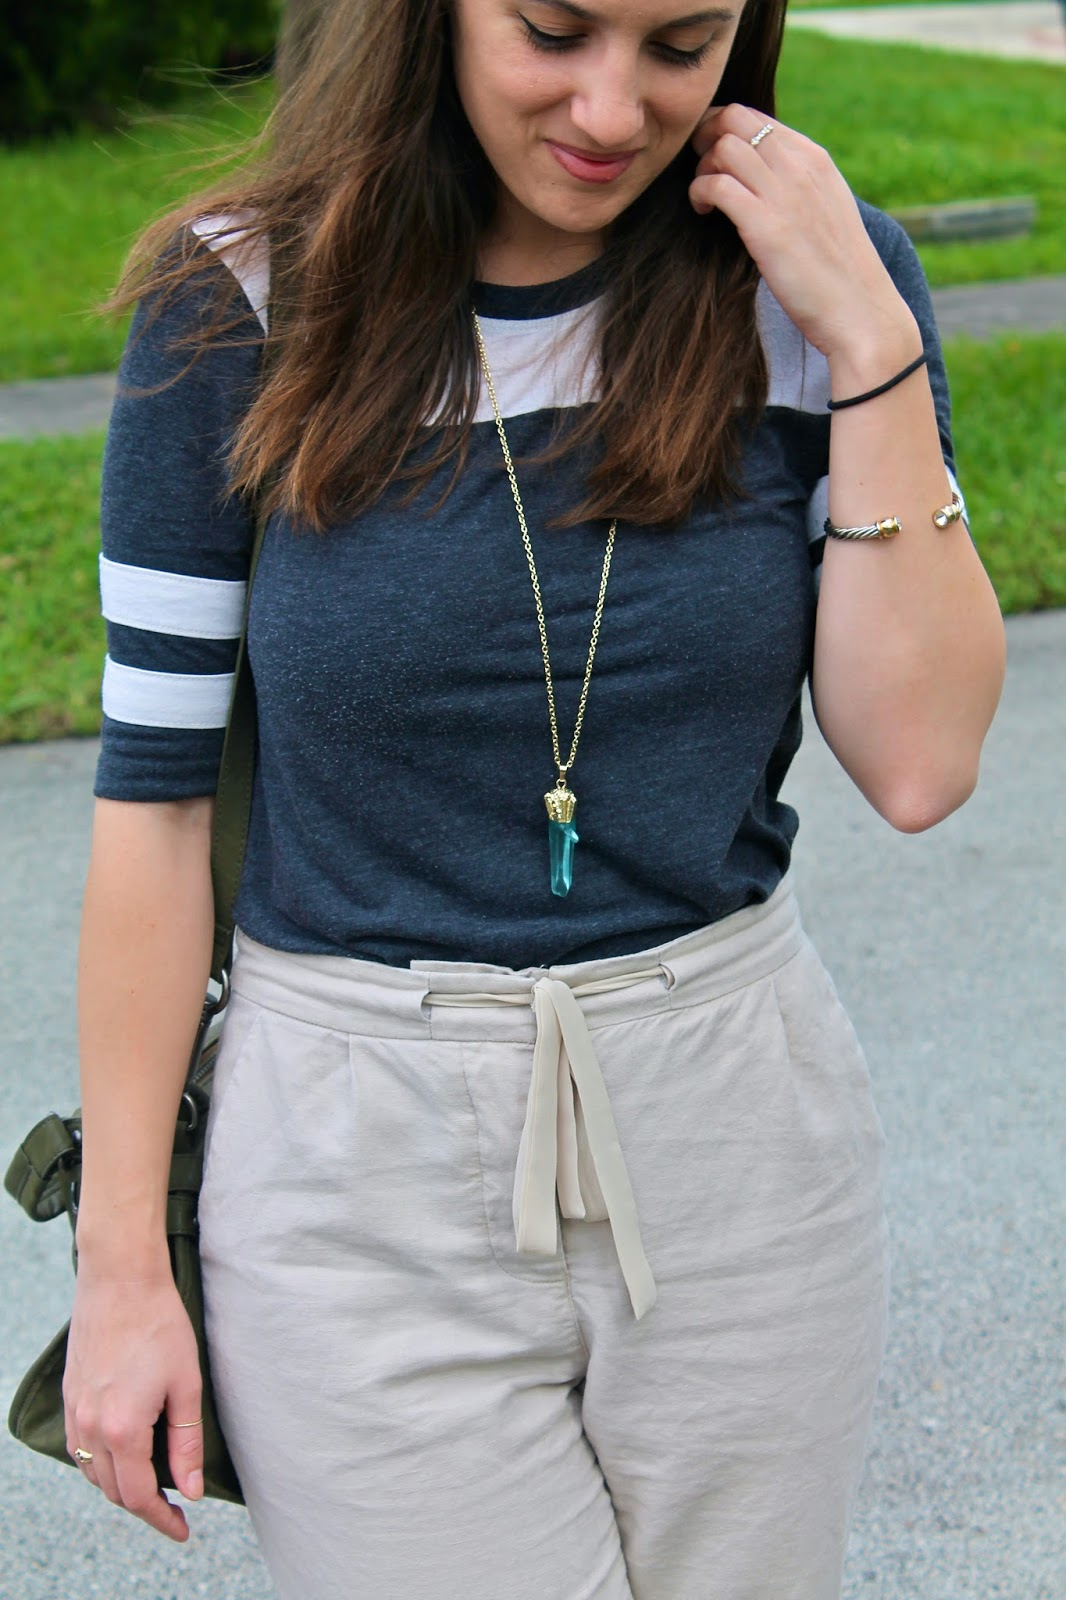 Lucky Brand Jeans, The HiRode, etsy, Free People, Donald J Pilner, Burlington Coat Factory, Macy's, vintage, forever 21, fashion blog, style blog, ootd, outfit ideas, fall fashion, Miami fashion blogger, fashion blogger, style blogger